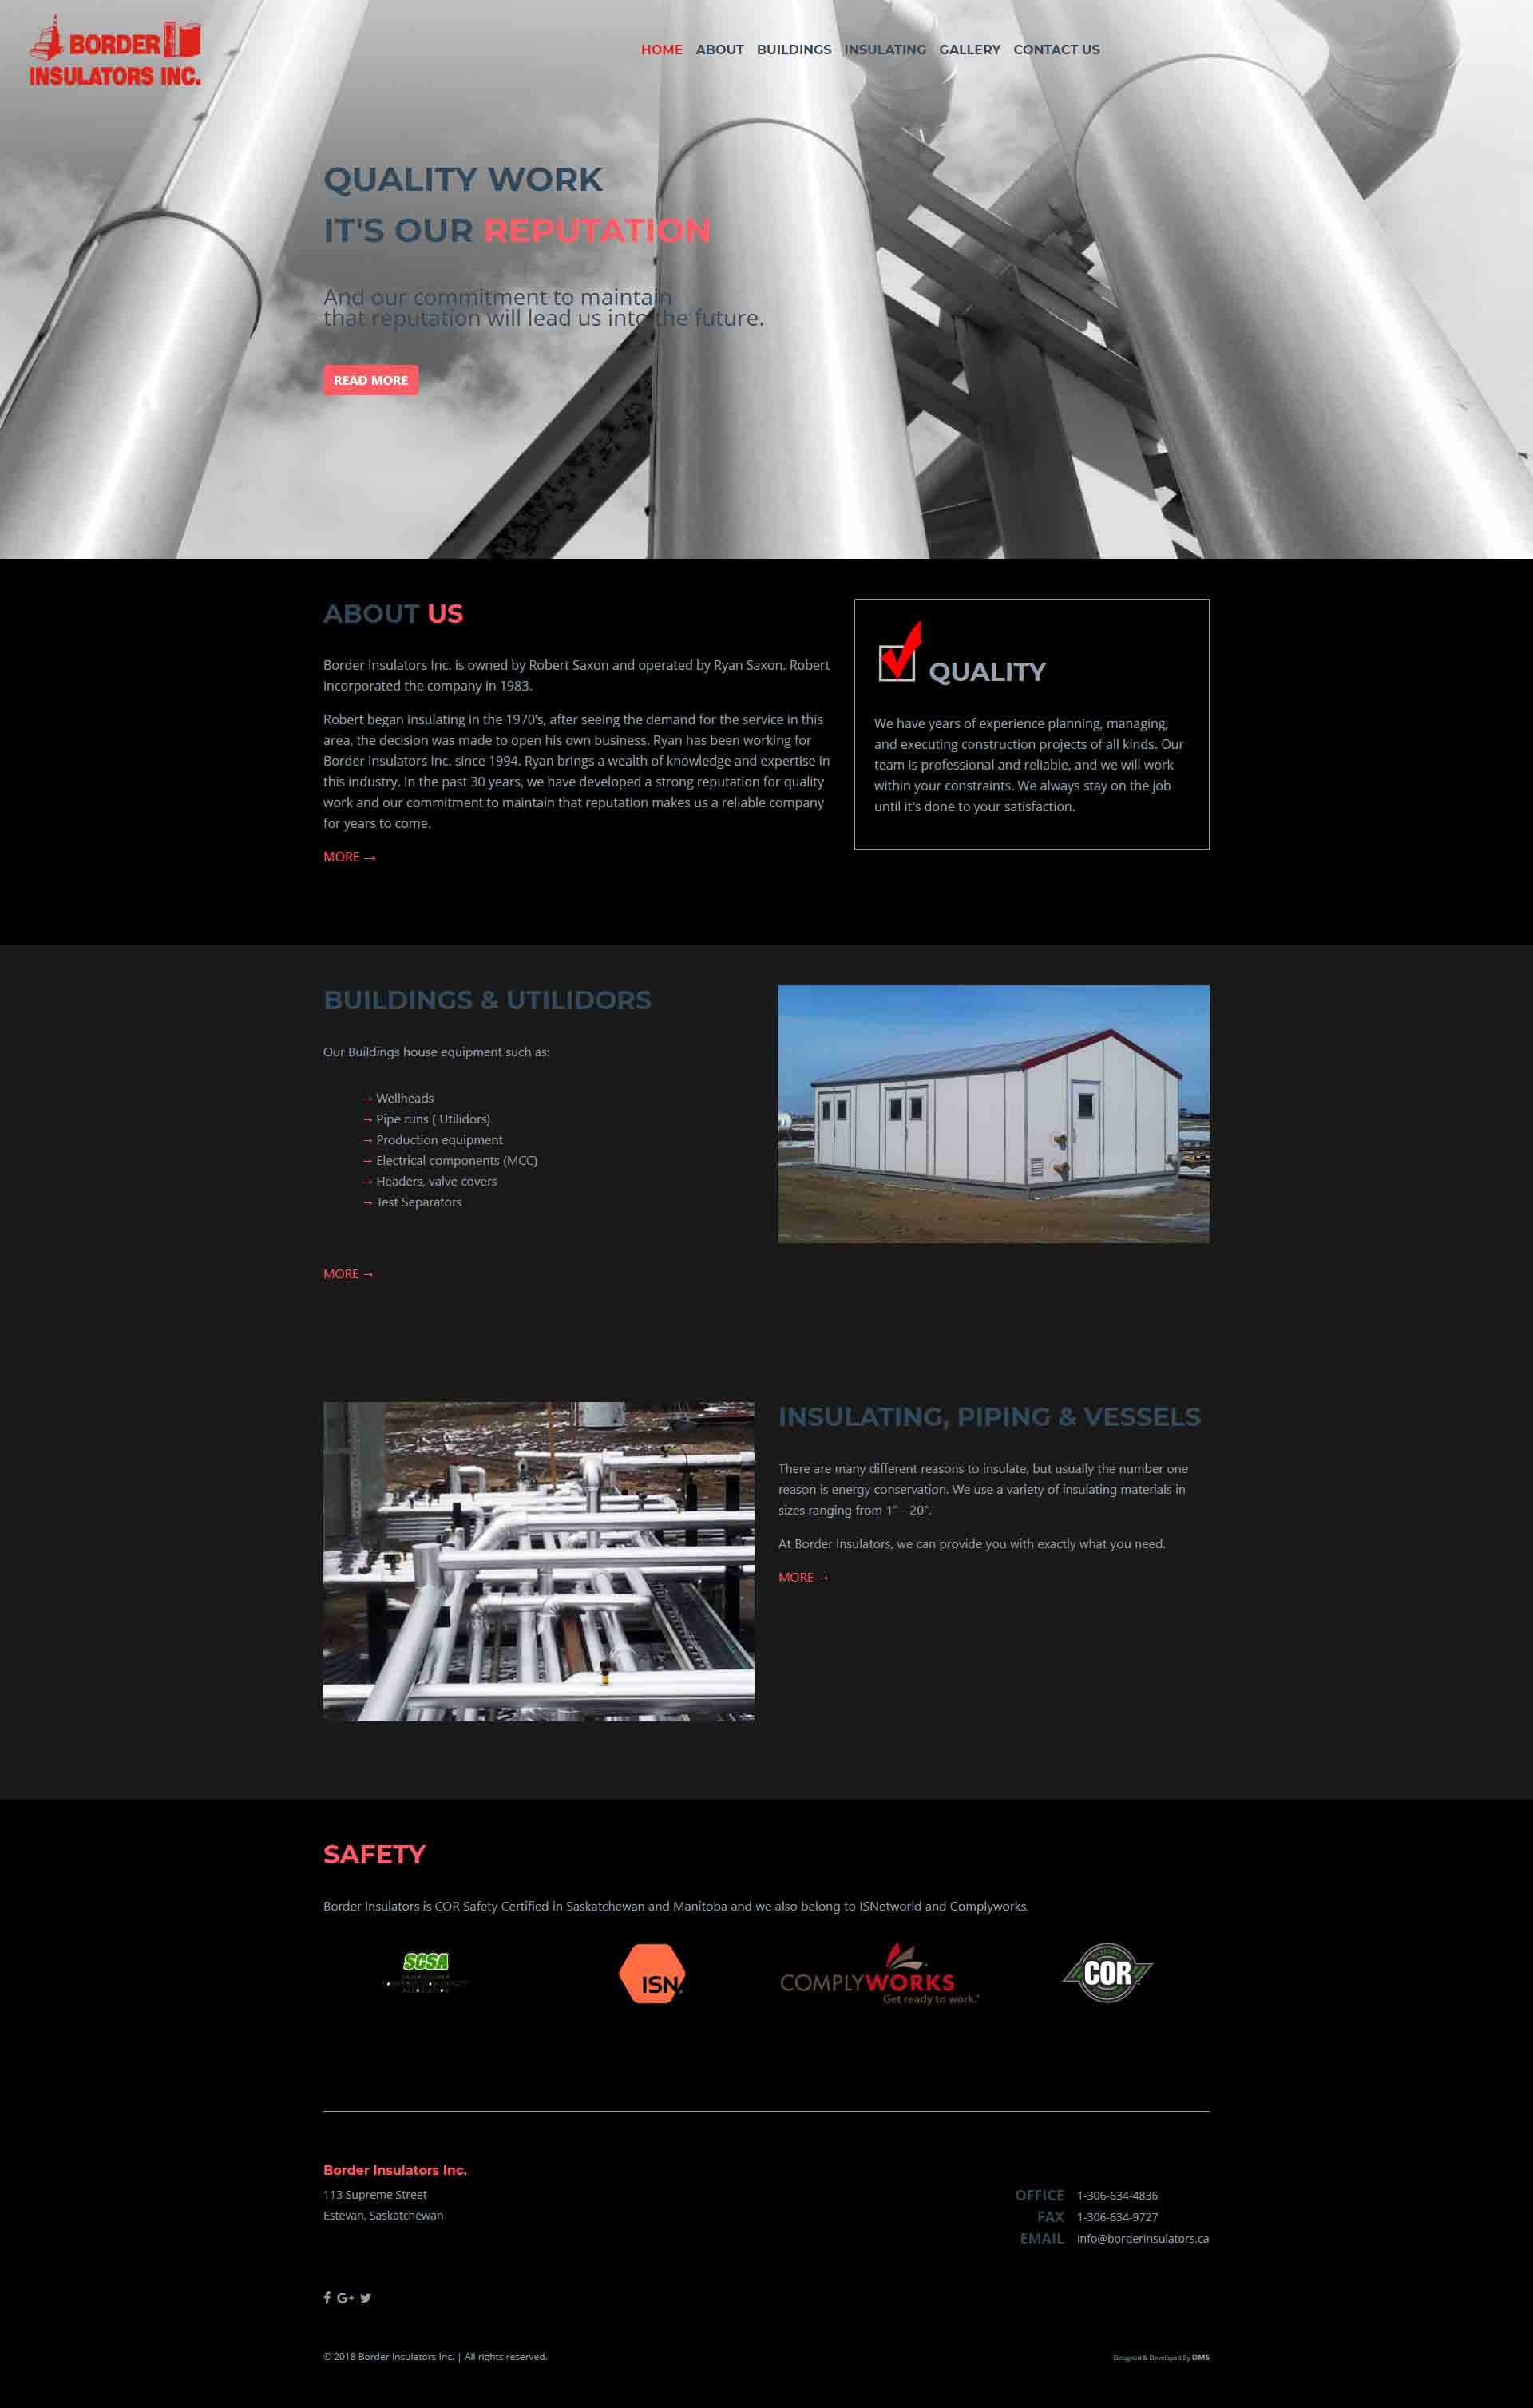 DMS Services Website Portfolio - Border Insulators Inc.